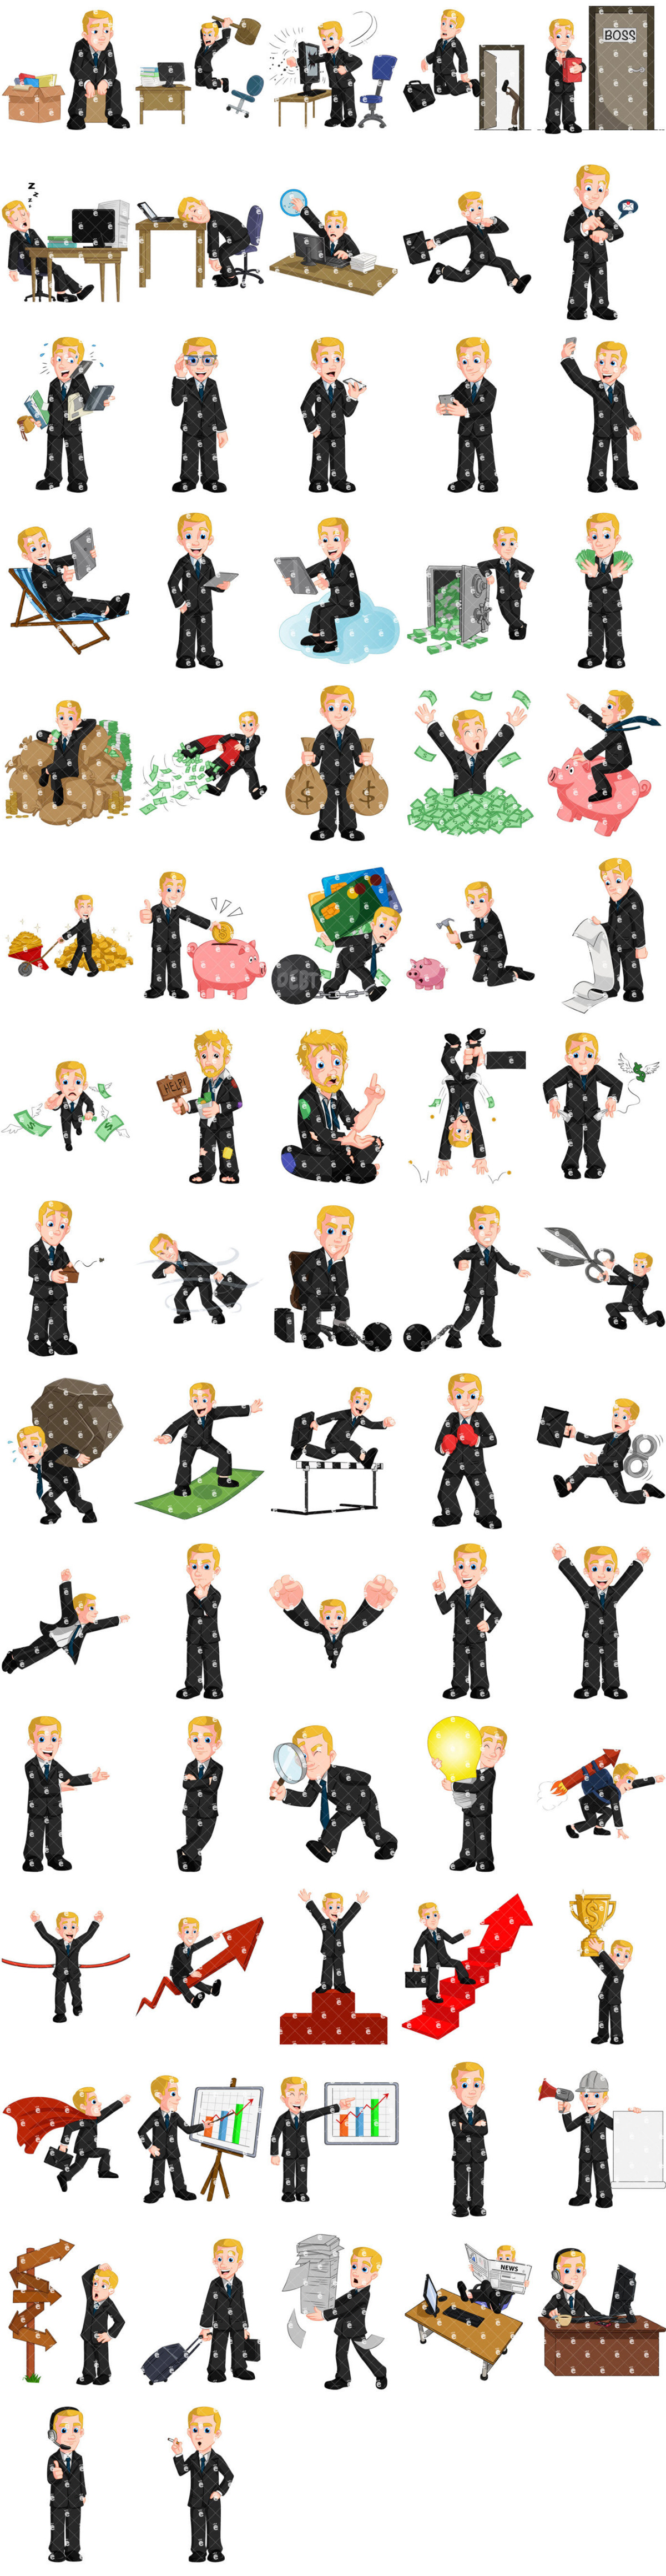 Preview Of The 72 Poses Of Harvey The Businessman